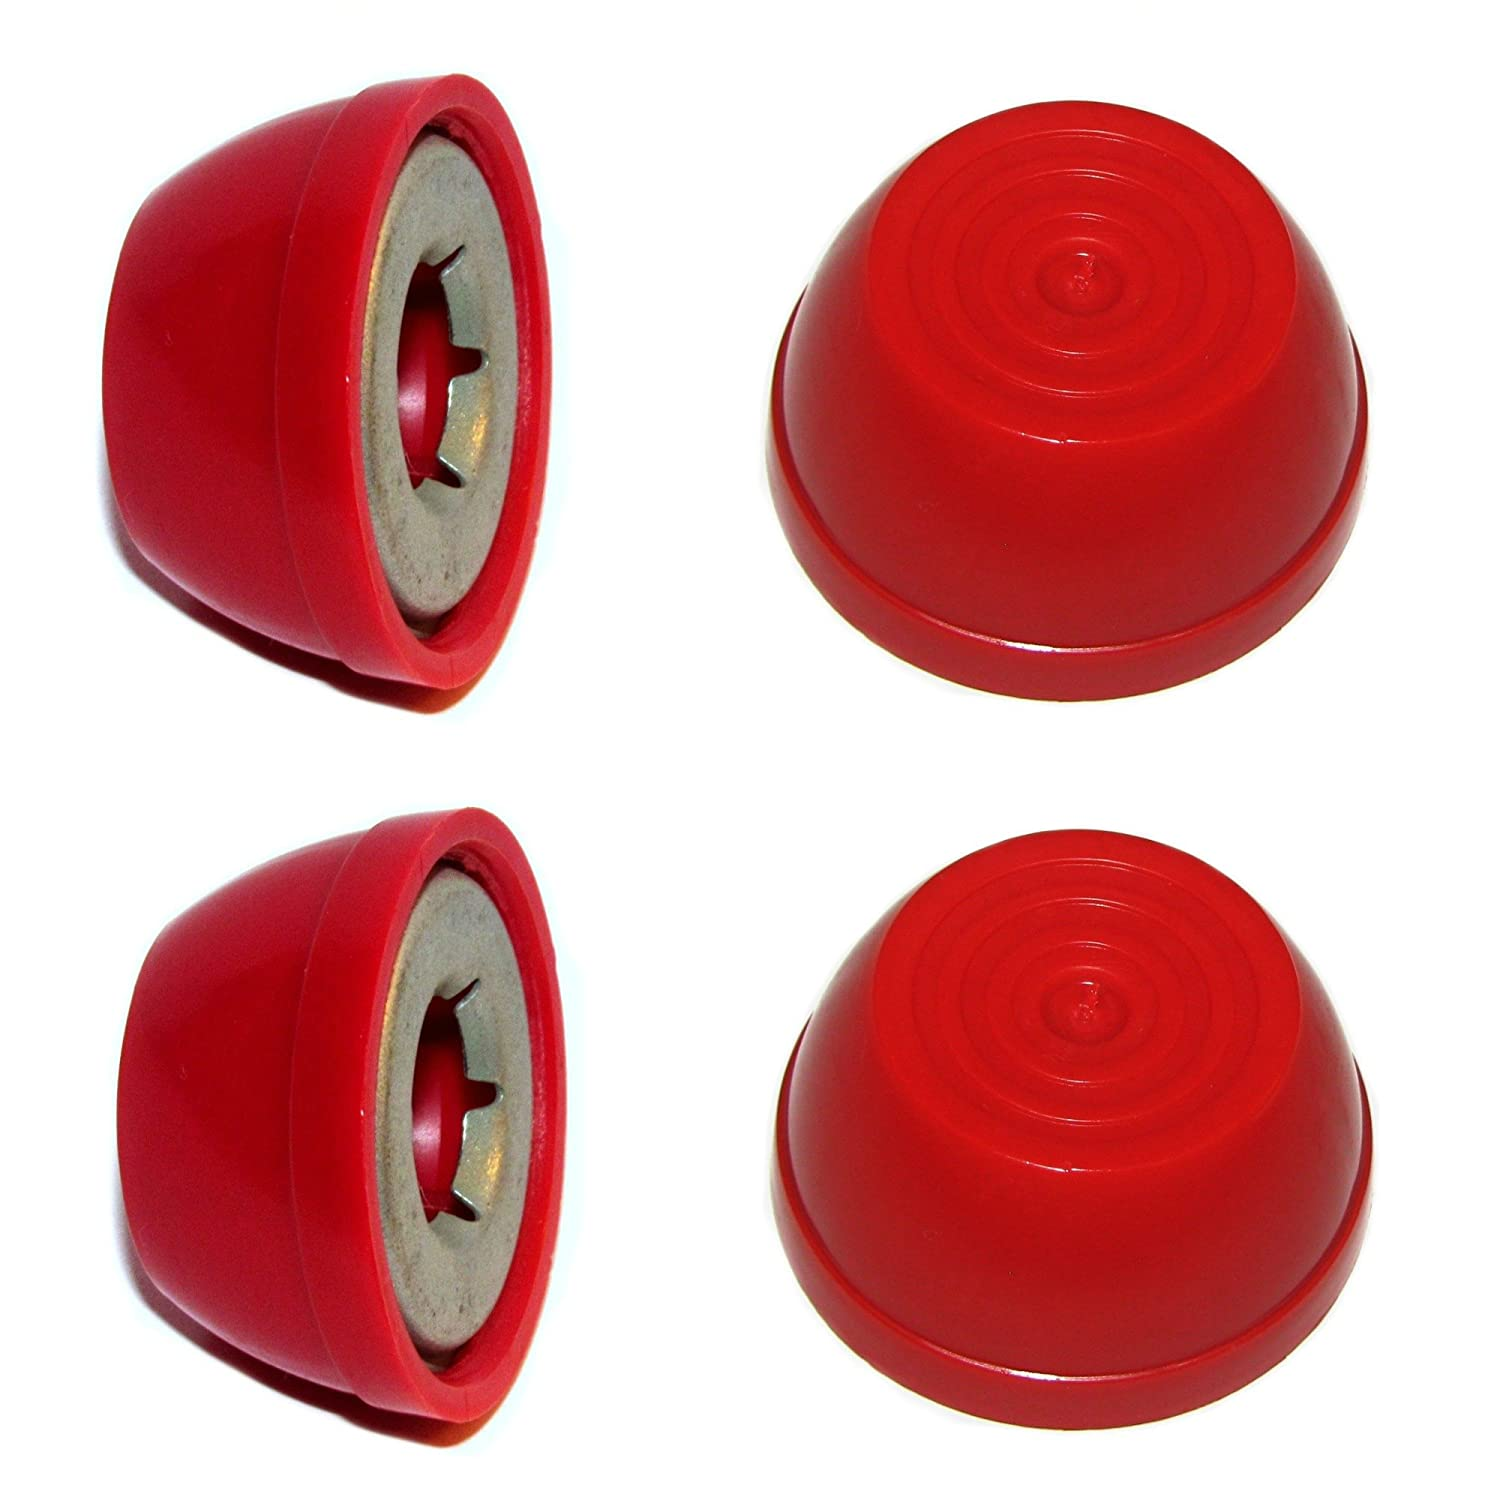 RED Radio Flyer Steel Wood WAGON Replacement Large 1 2 Wheel Hub Caps 4 pk